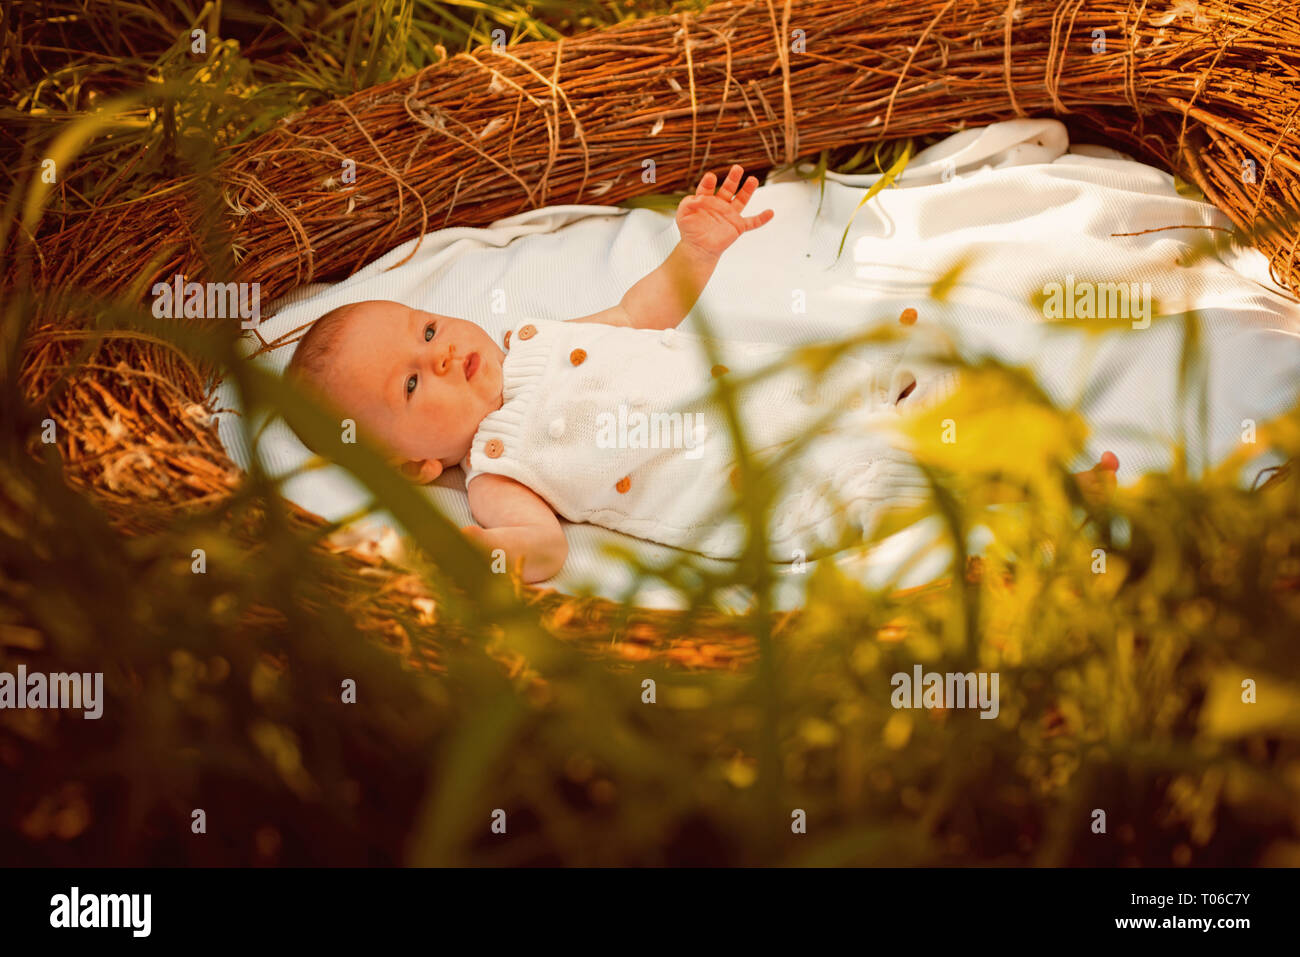 Family psychology. Infant developmentl psychology. Newborn baby in crib. Pediatric care for newborn baby. Family care and health therapy - Stock Image